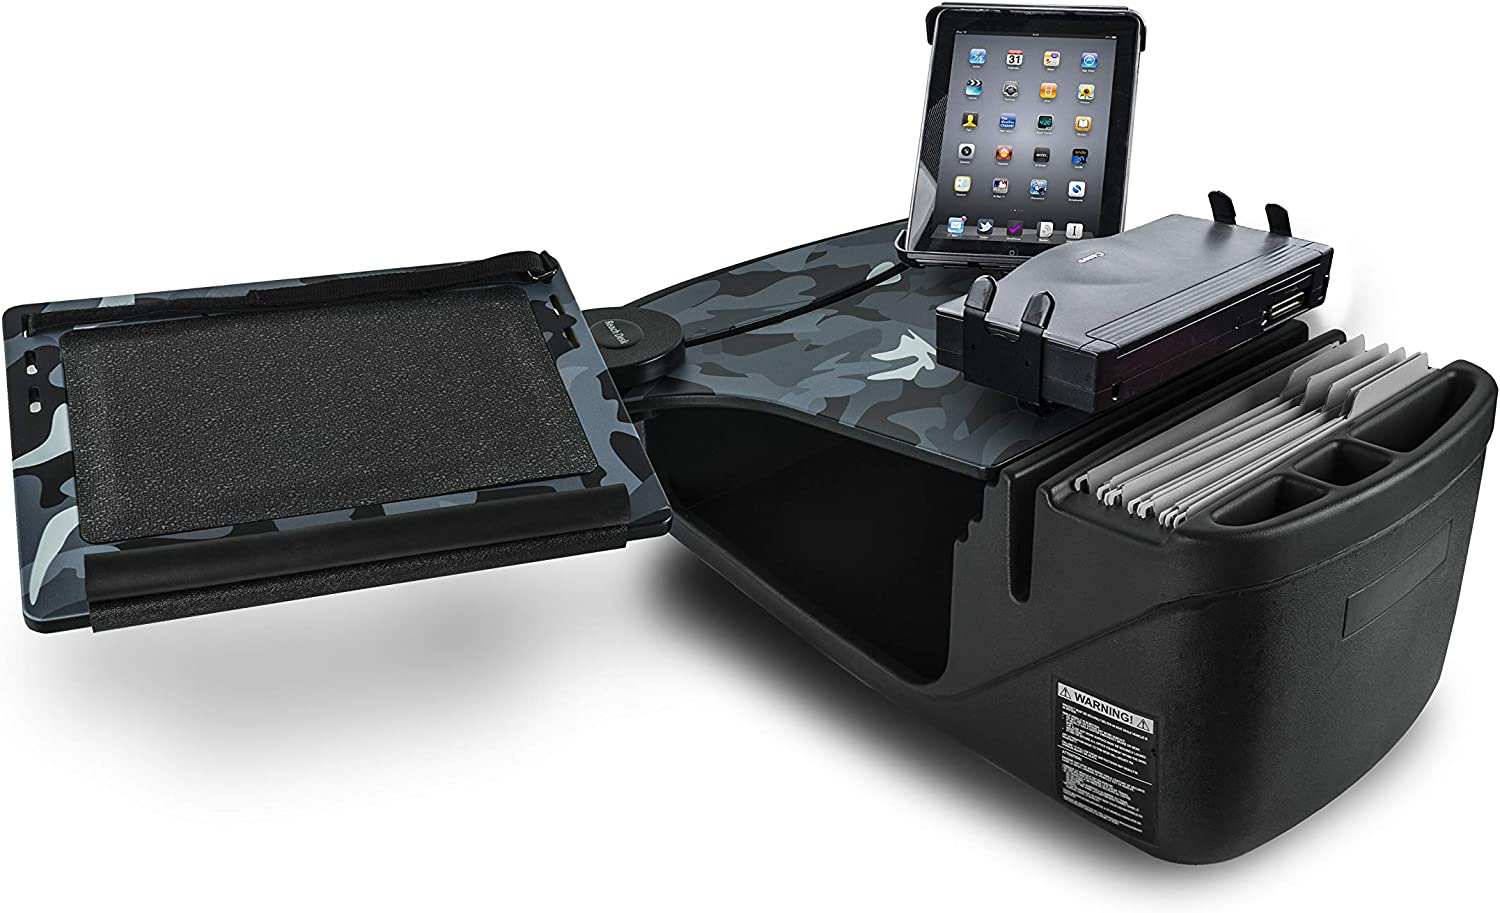 AutoExec AUE10185 Reach Front Seat Car Desk Urban Camouflage Finish with Printer Stand and Tablet Mount